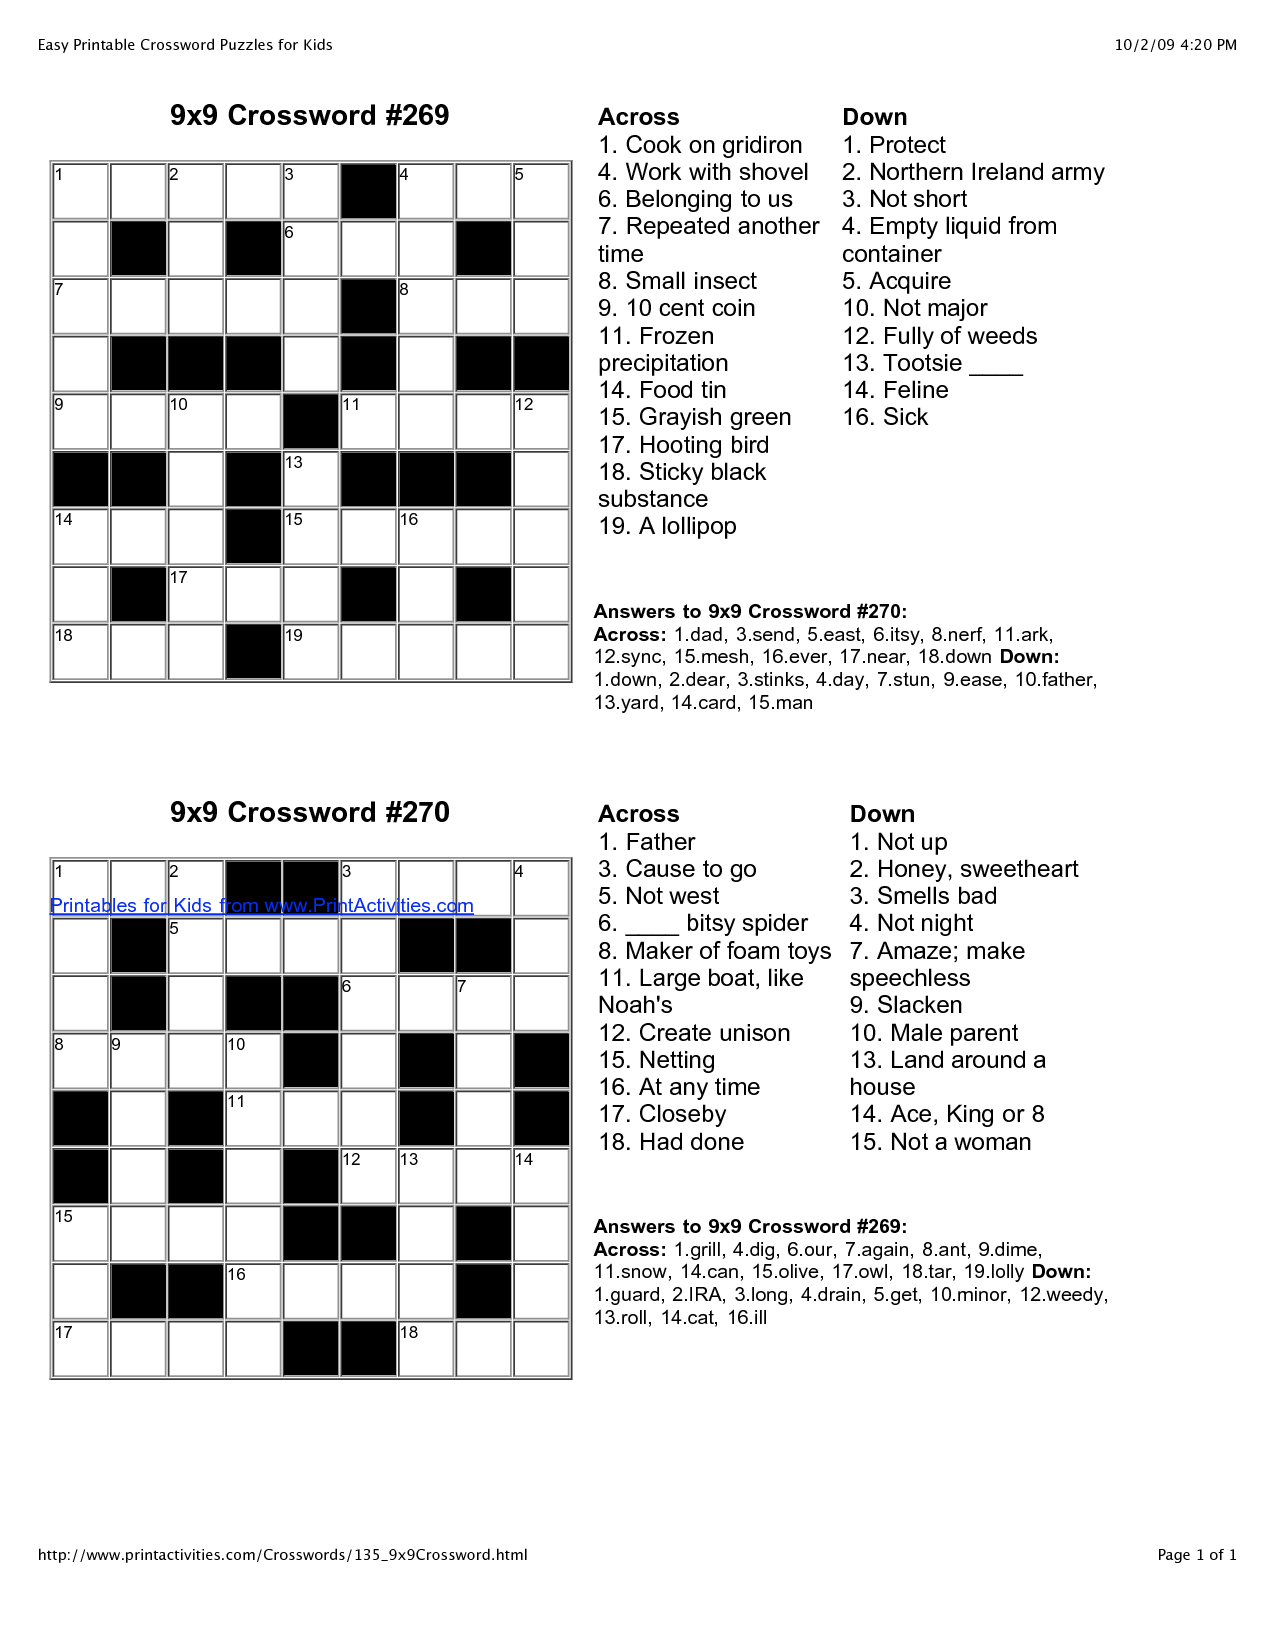 Easy Crossword Puzzles | I'm Going To Be An Slp! | Kids Crossword - Printable Crosswords For 15 Year Olds